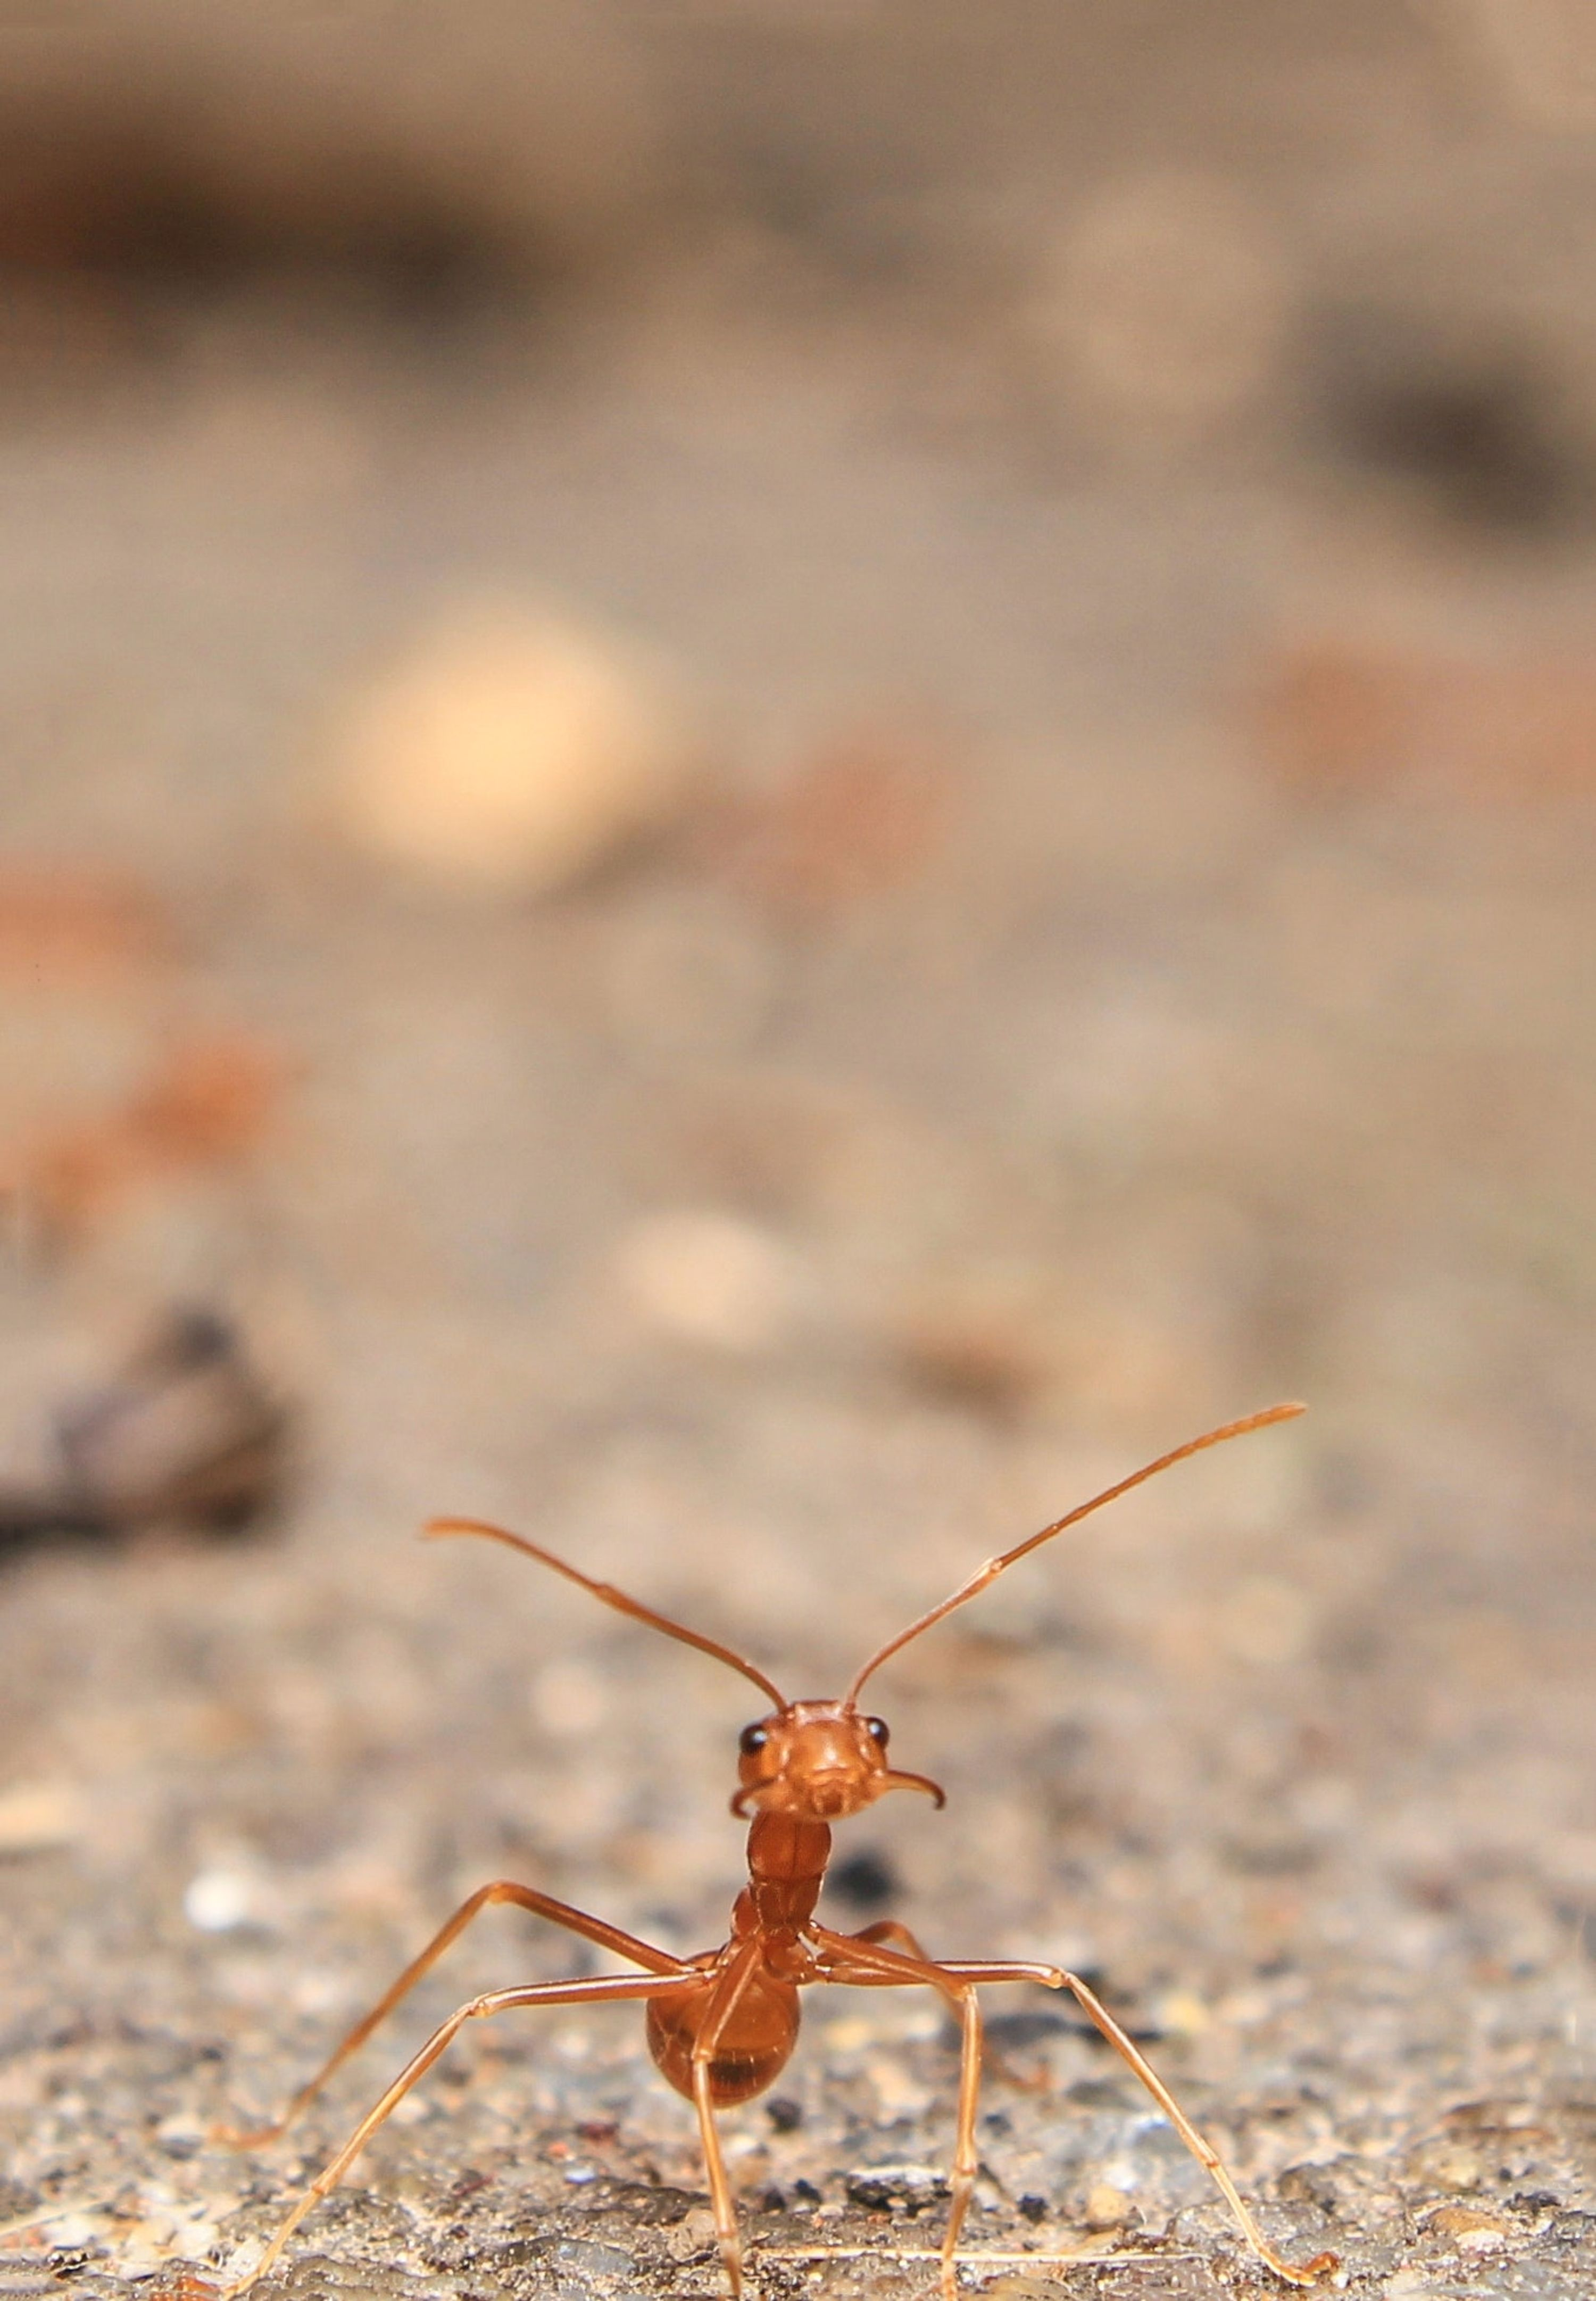 one lone ant appearing curious and docile, gazing up into the camera